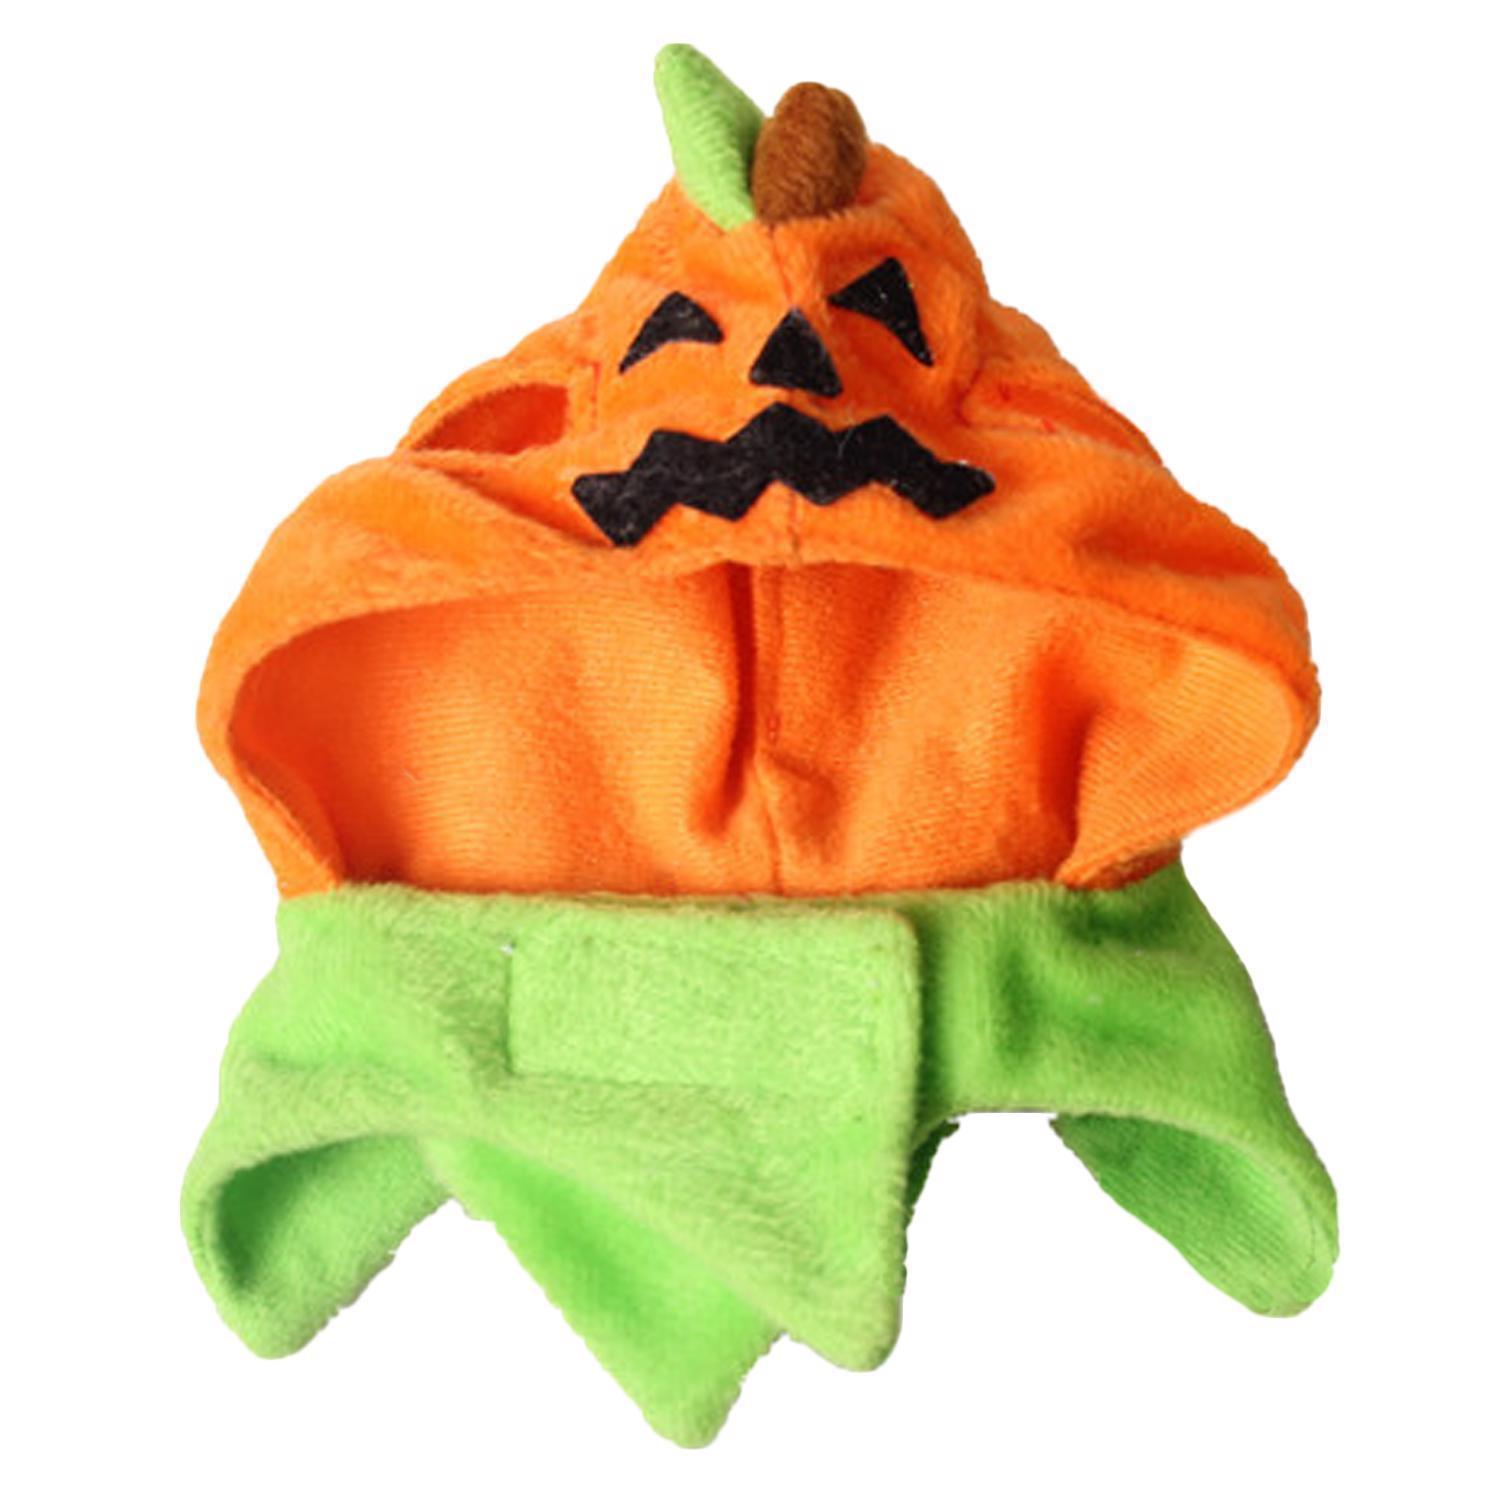 Cute Pumpkin Pet Costume Dress Up Cap Puppy Dogs Cats Halloween Party Decoration